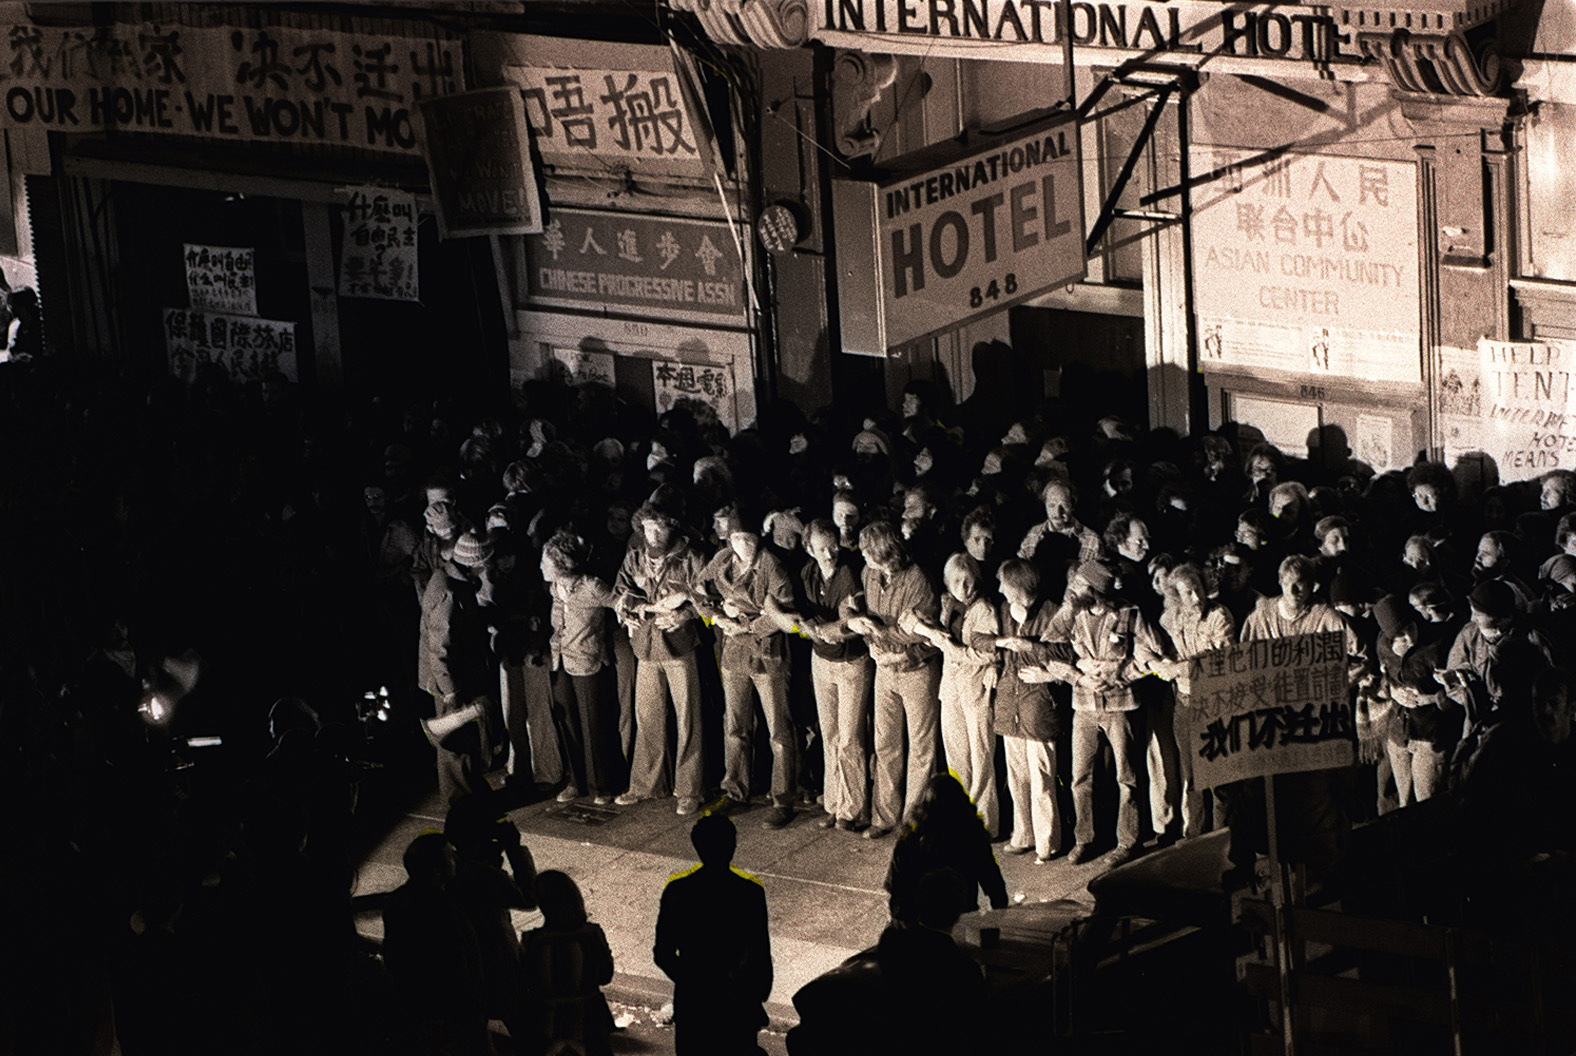 Hundreds of protesters linking arms in front of the International Hotel in San Francisco try to prevent the San Francisco Sheriffs' deputies from evicting elderly tenants on August 4,1977.